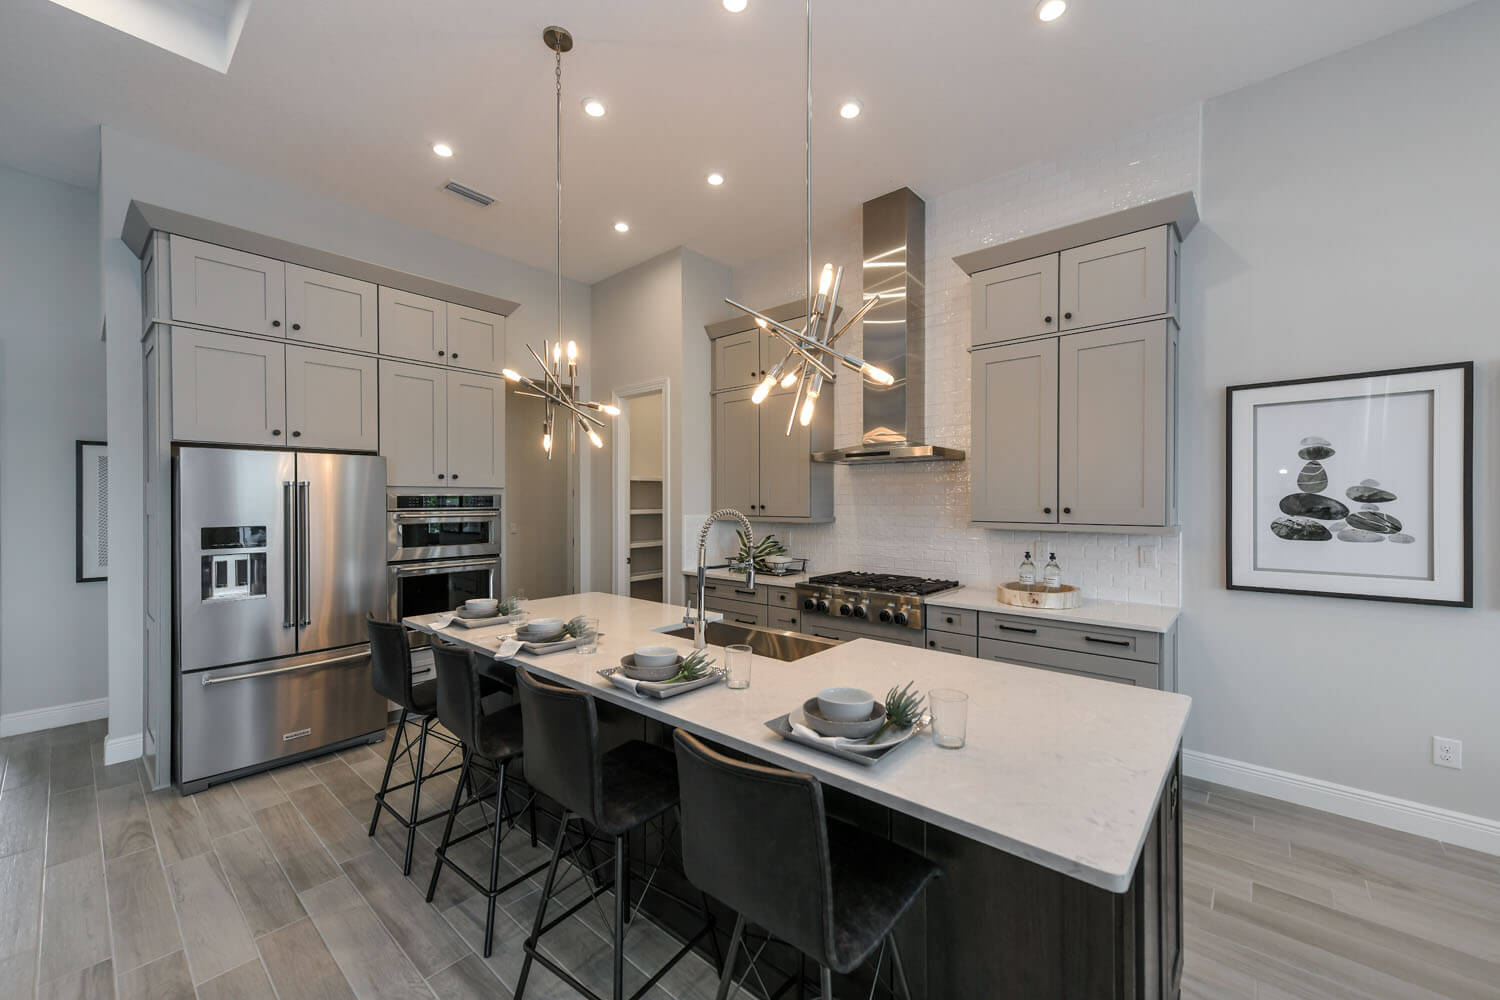 New Tampa  Model Home Martin in Worthington, located at 4612 Antrim Drive, Sarasota, FL Built By Cardel Homes Tampa